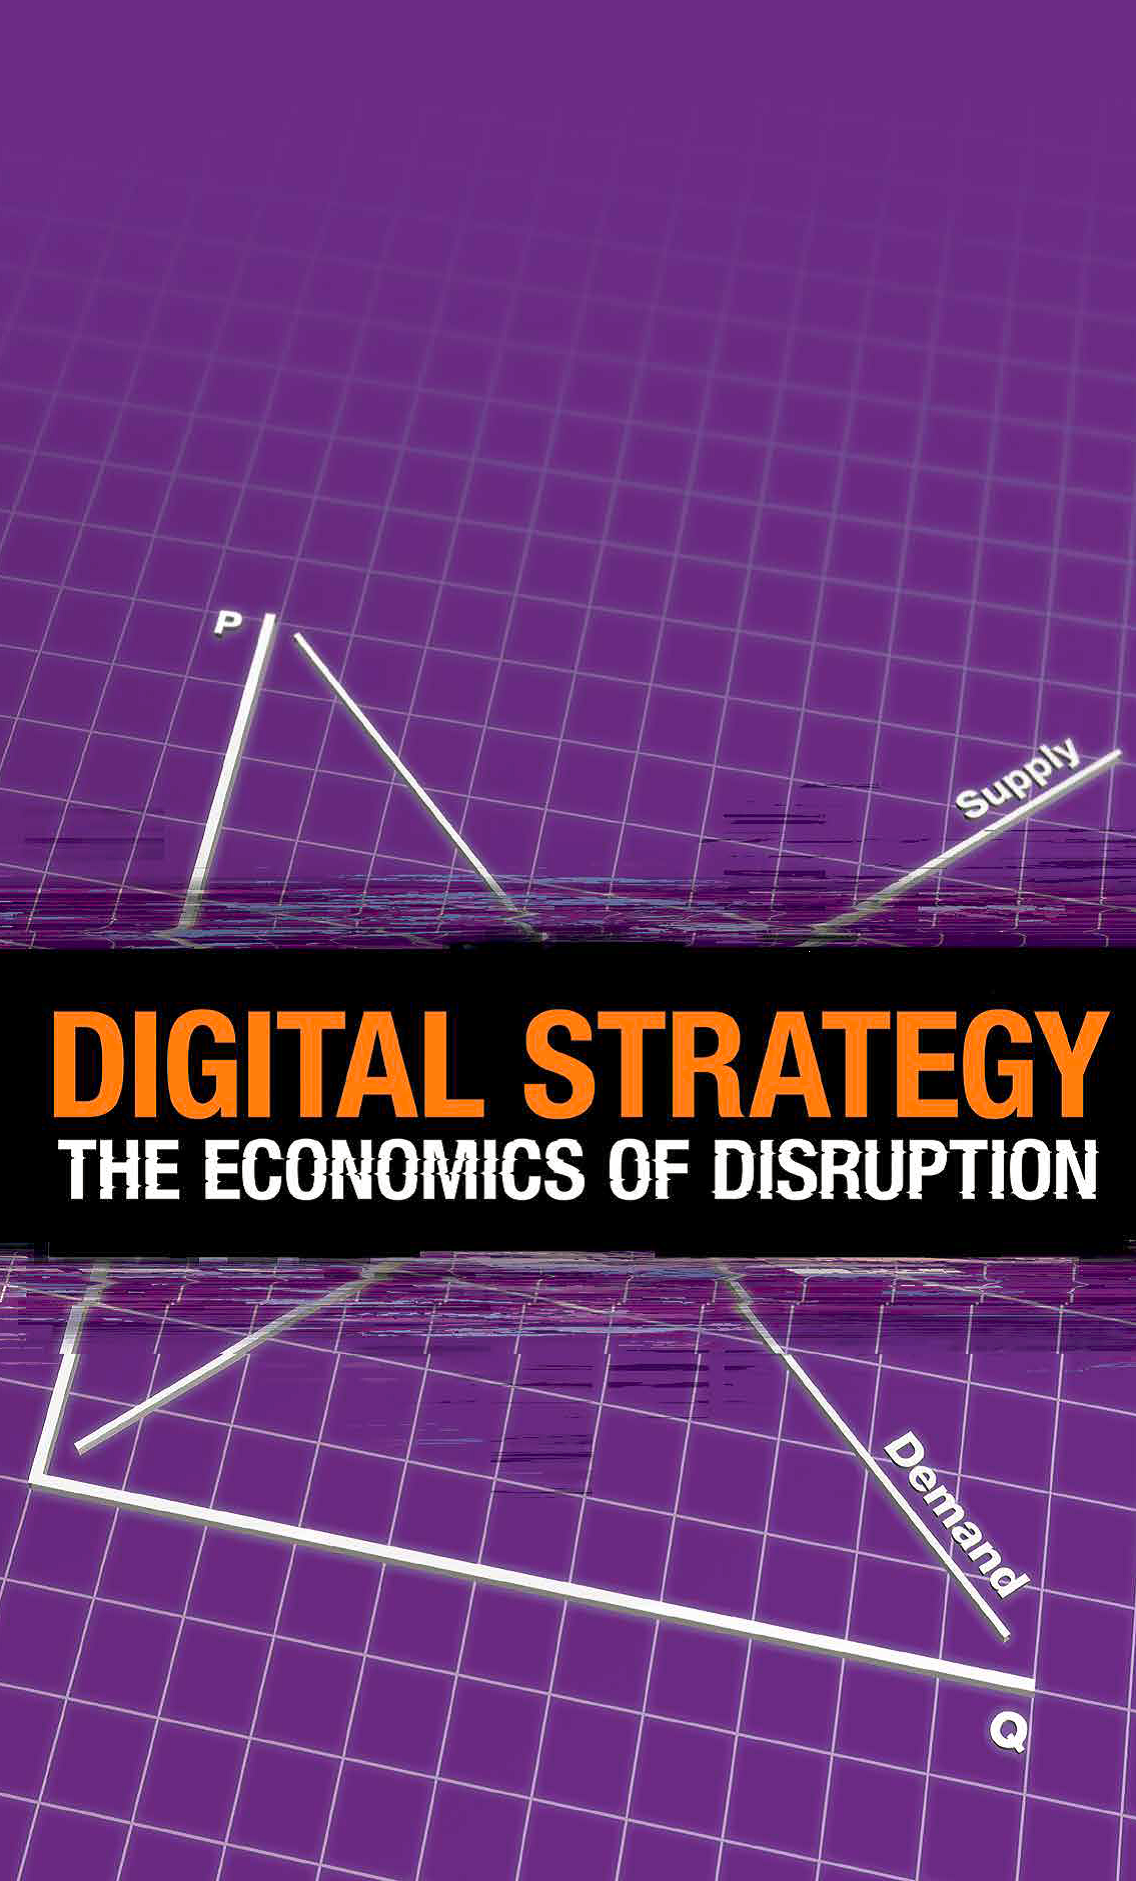 McKinsey Quarterly - Digital Strategy, The Economics of Disruption